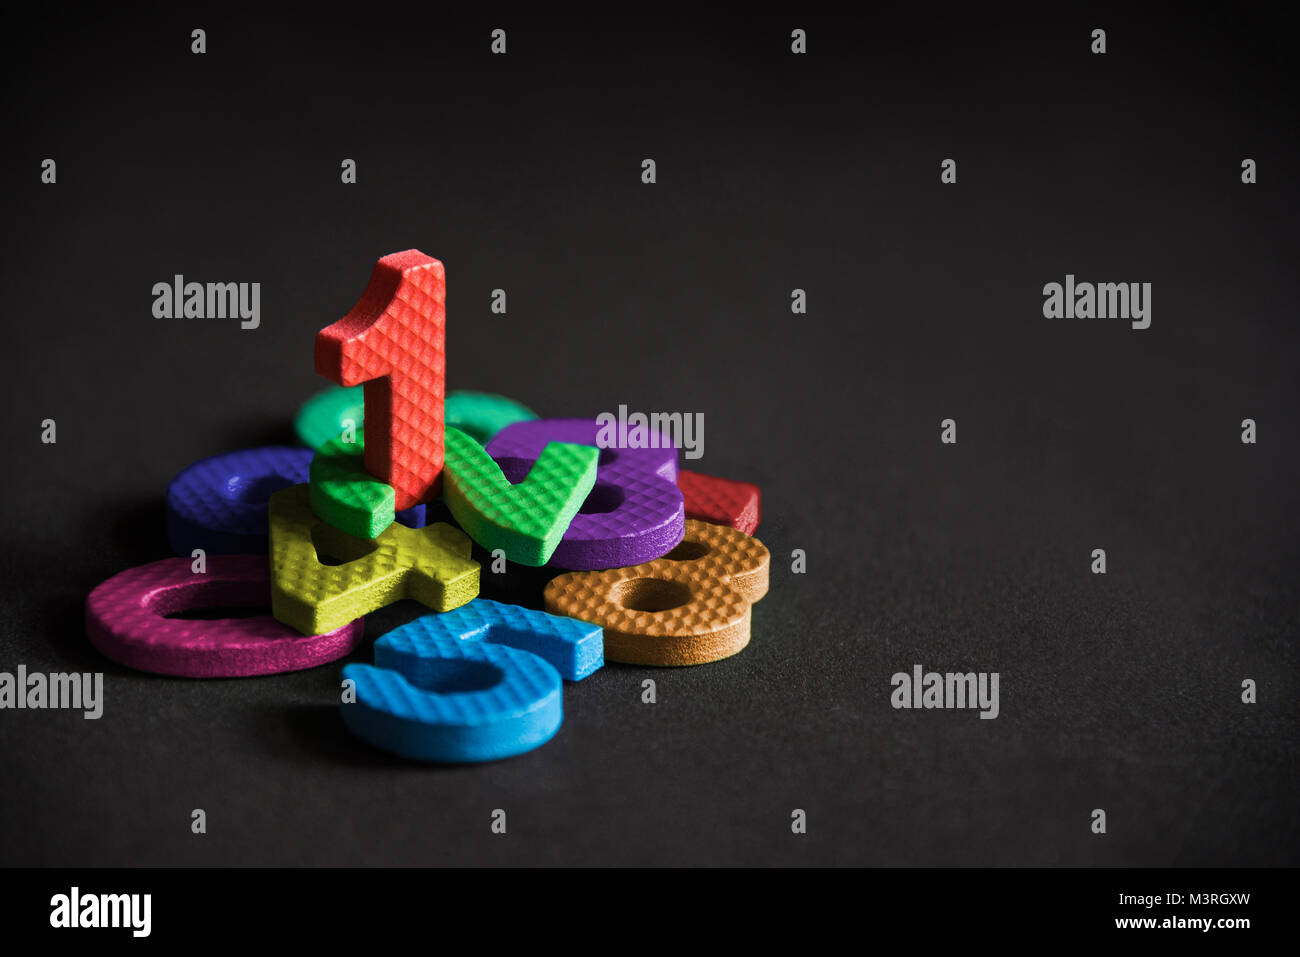 Business winner or leader, number one stand on the pile of number foam blocks, success, achievement concept background. - Stock Image